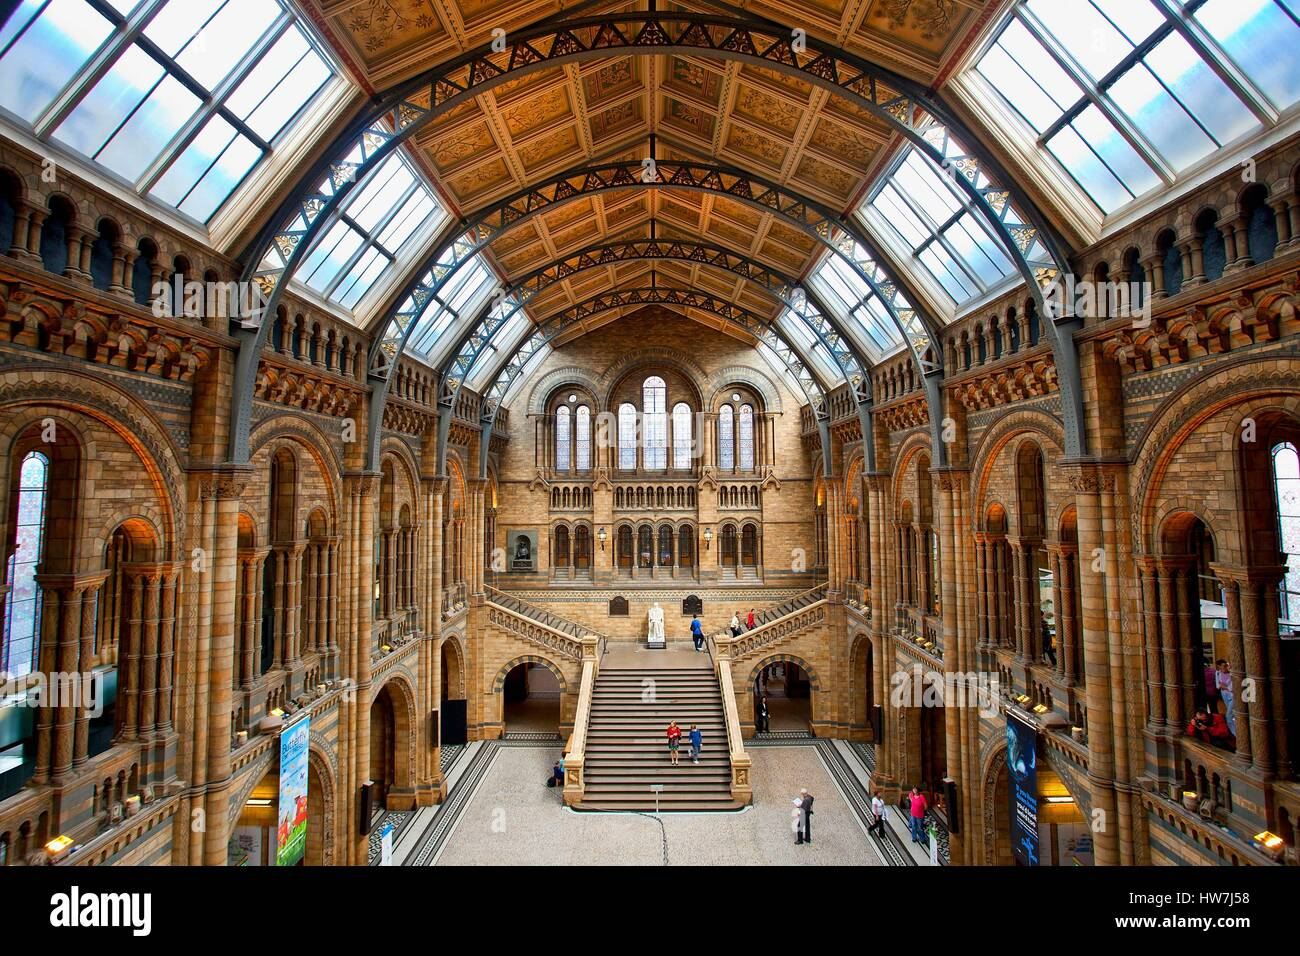 United Kingdom, London, Central Hall of the Natural History Museum - Stock Image